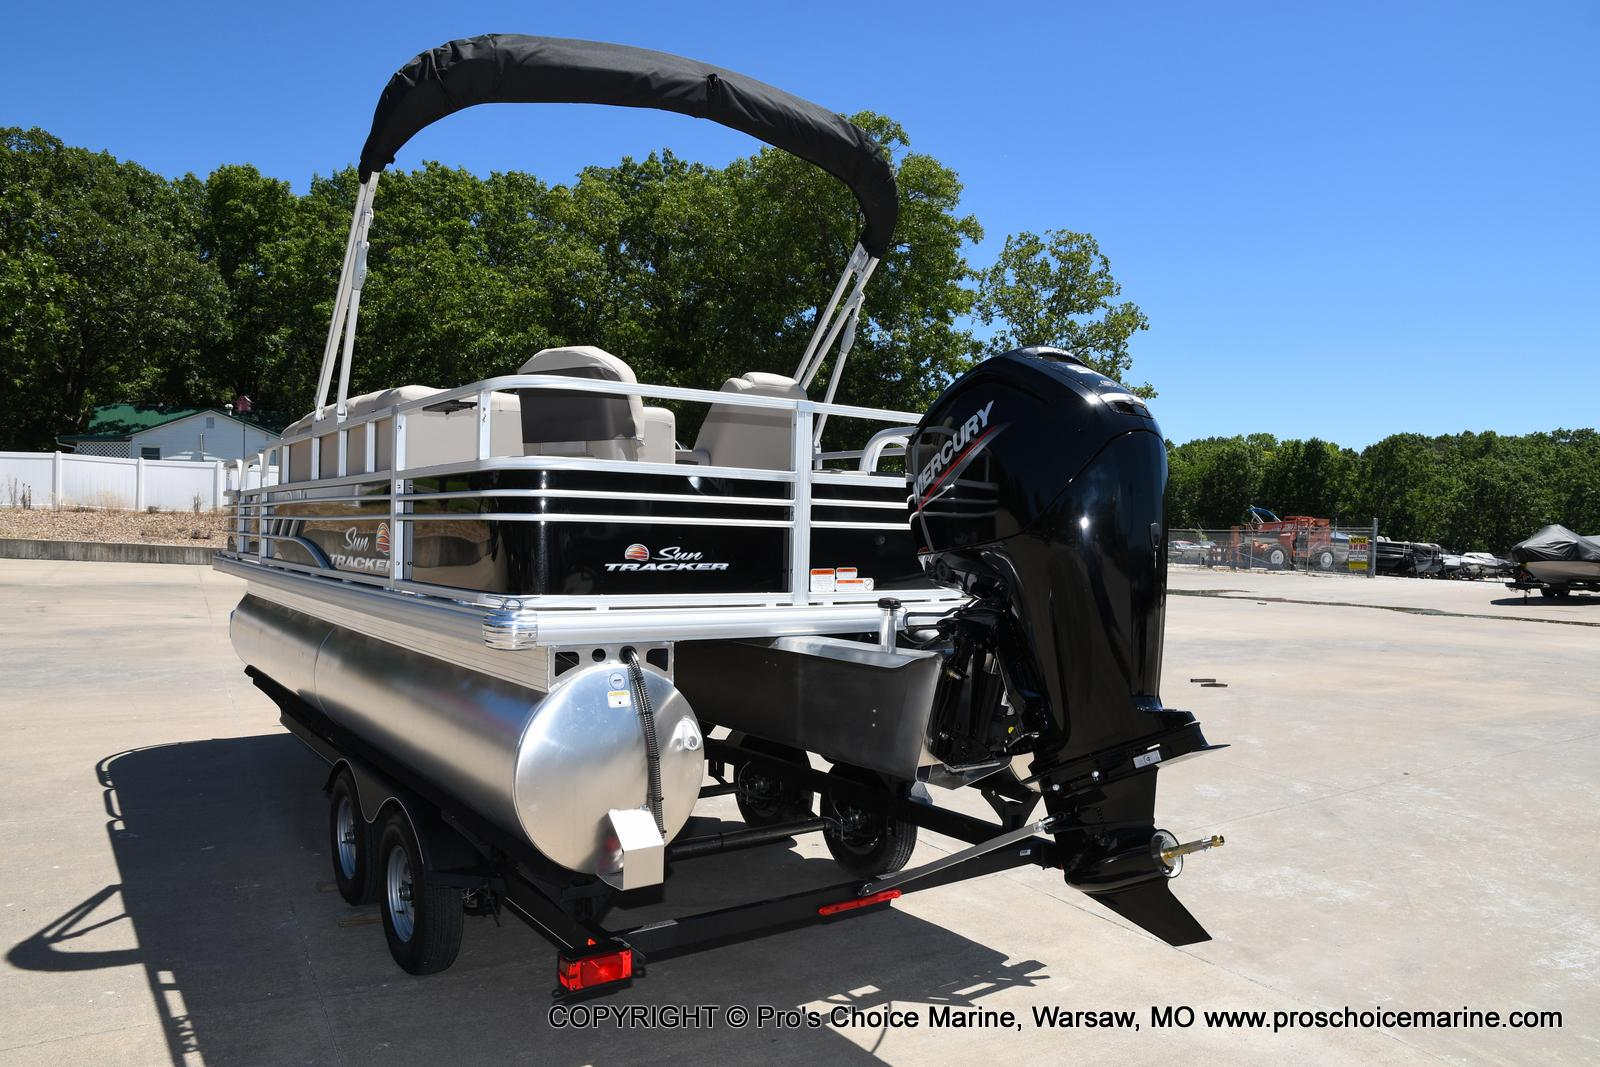 2021 Sun Tracker boat for sale, model of the boat is Fishin' Barge 20 DLX & Image # 38 of 50